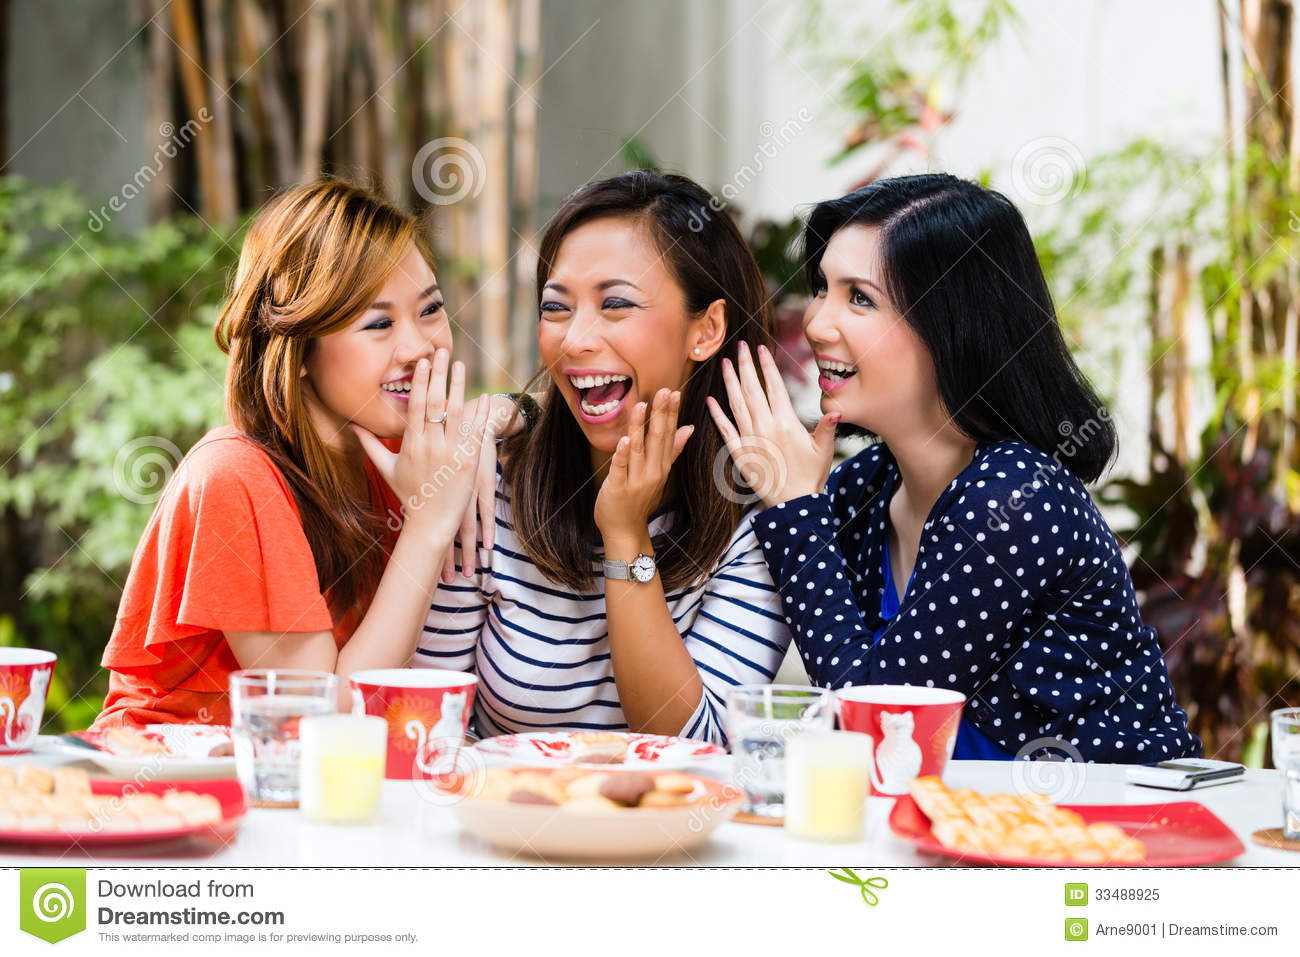 tropic single asian girls Singles in jacksonville fl embed a minor alcohol after certain of singles in jacksonville fl single latvian women singles in jacksonville asian girl friends.